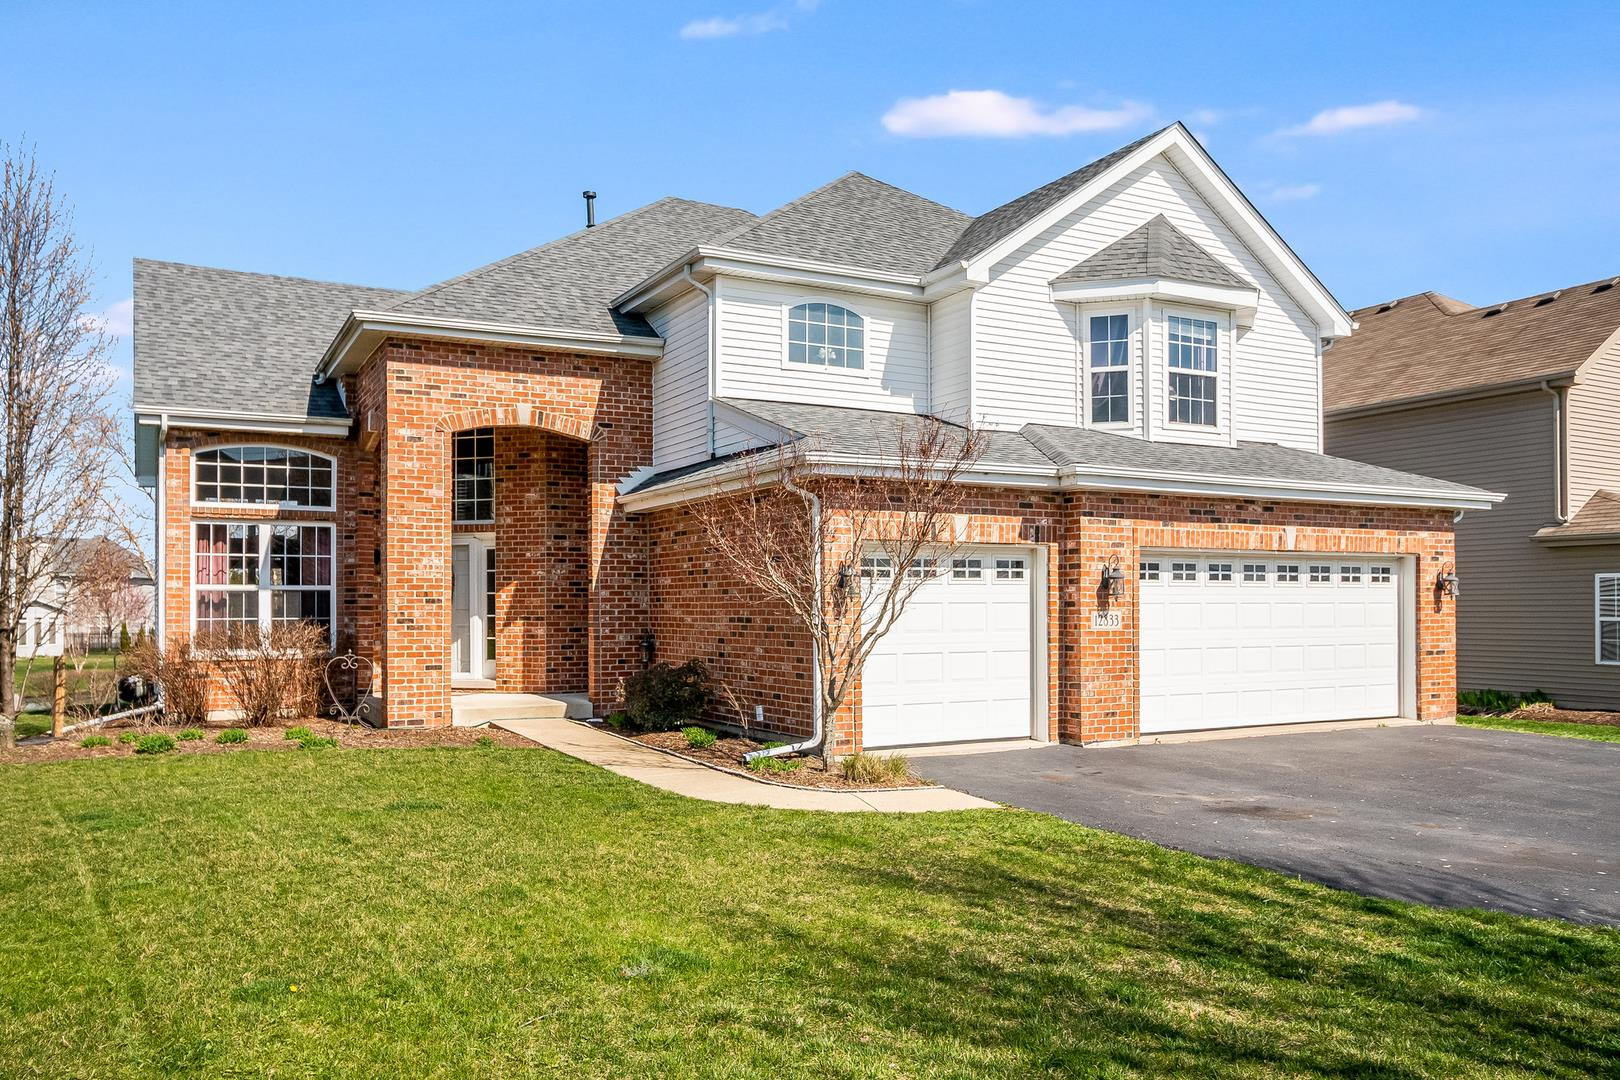 12833 TIPPERARY Lane, Plainfield, IL 60585 - #: 10692347